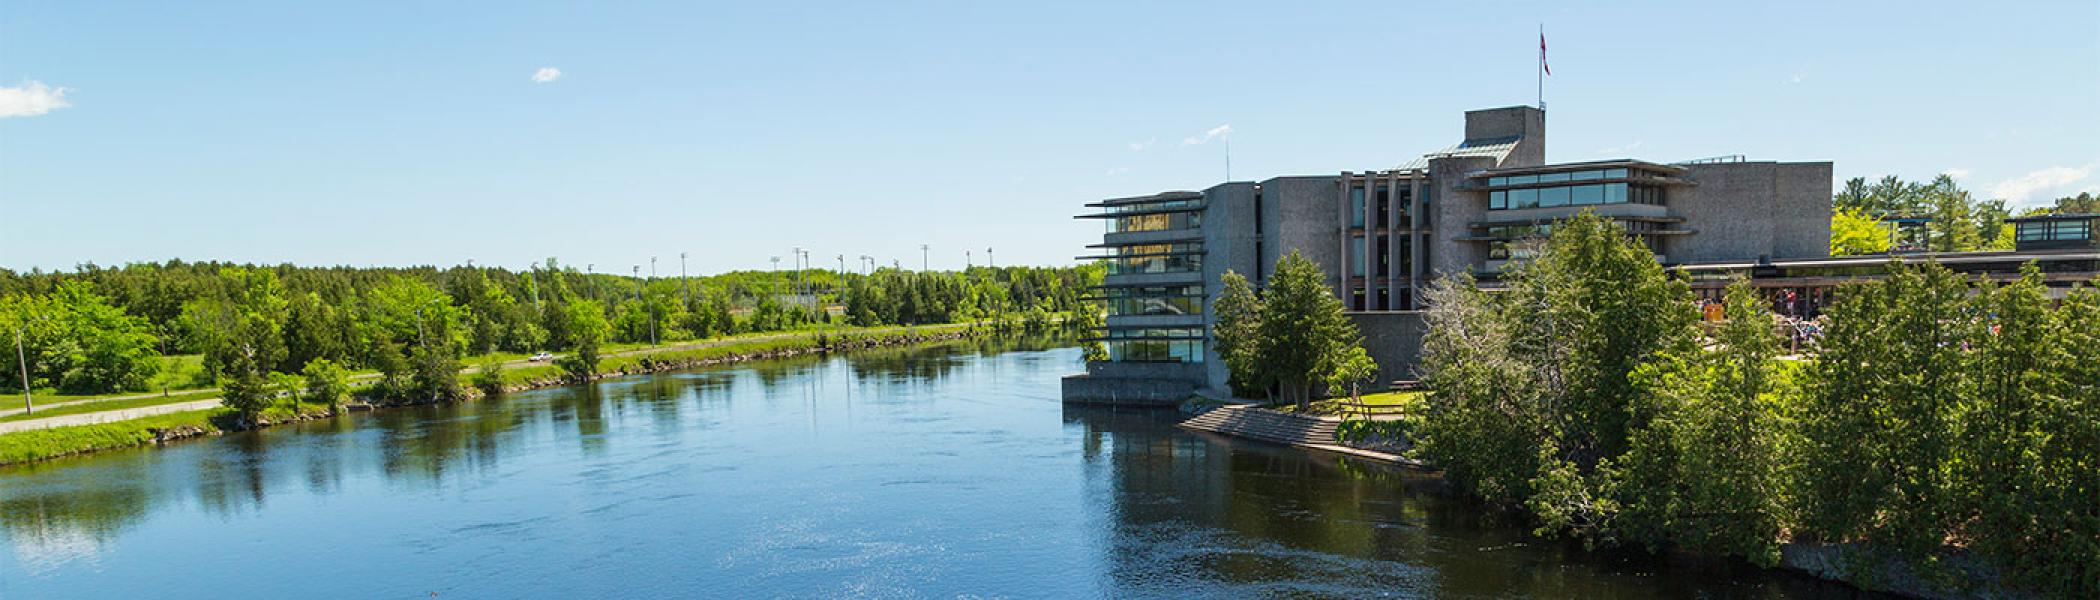 Picture of the west bank of campus from across the Otonabee river during the summer